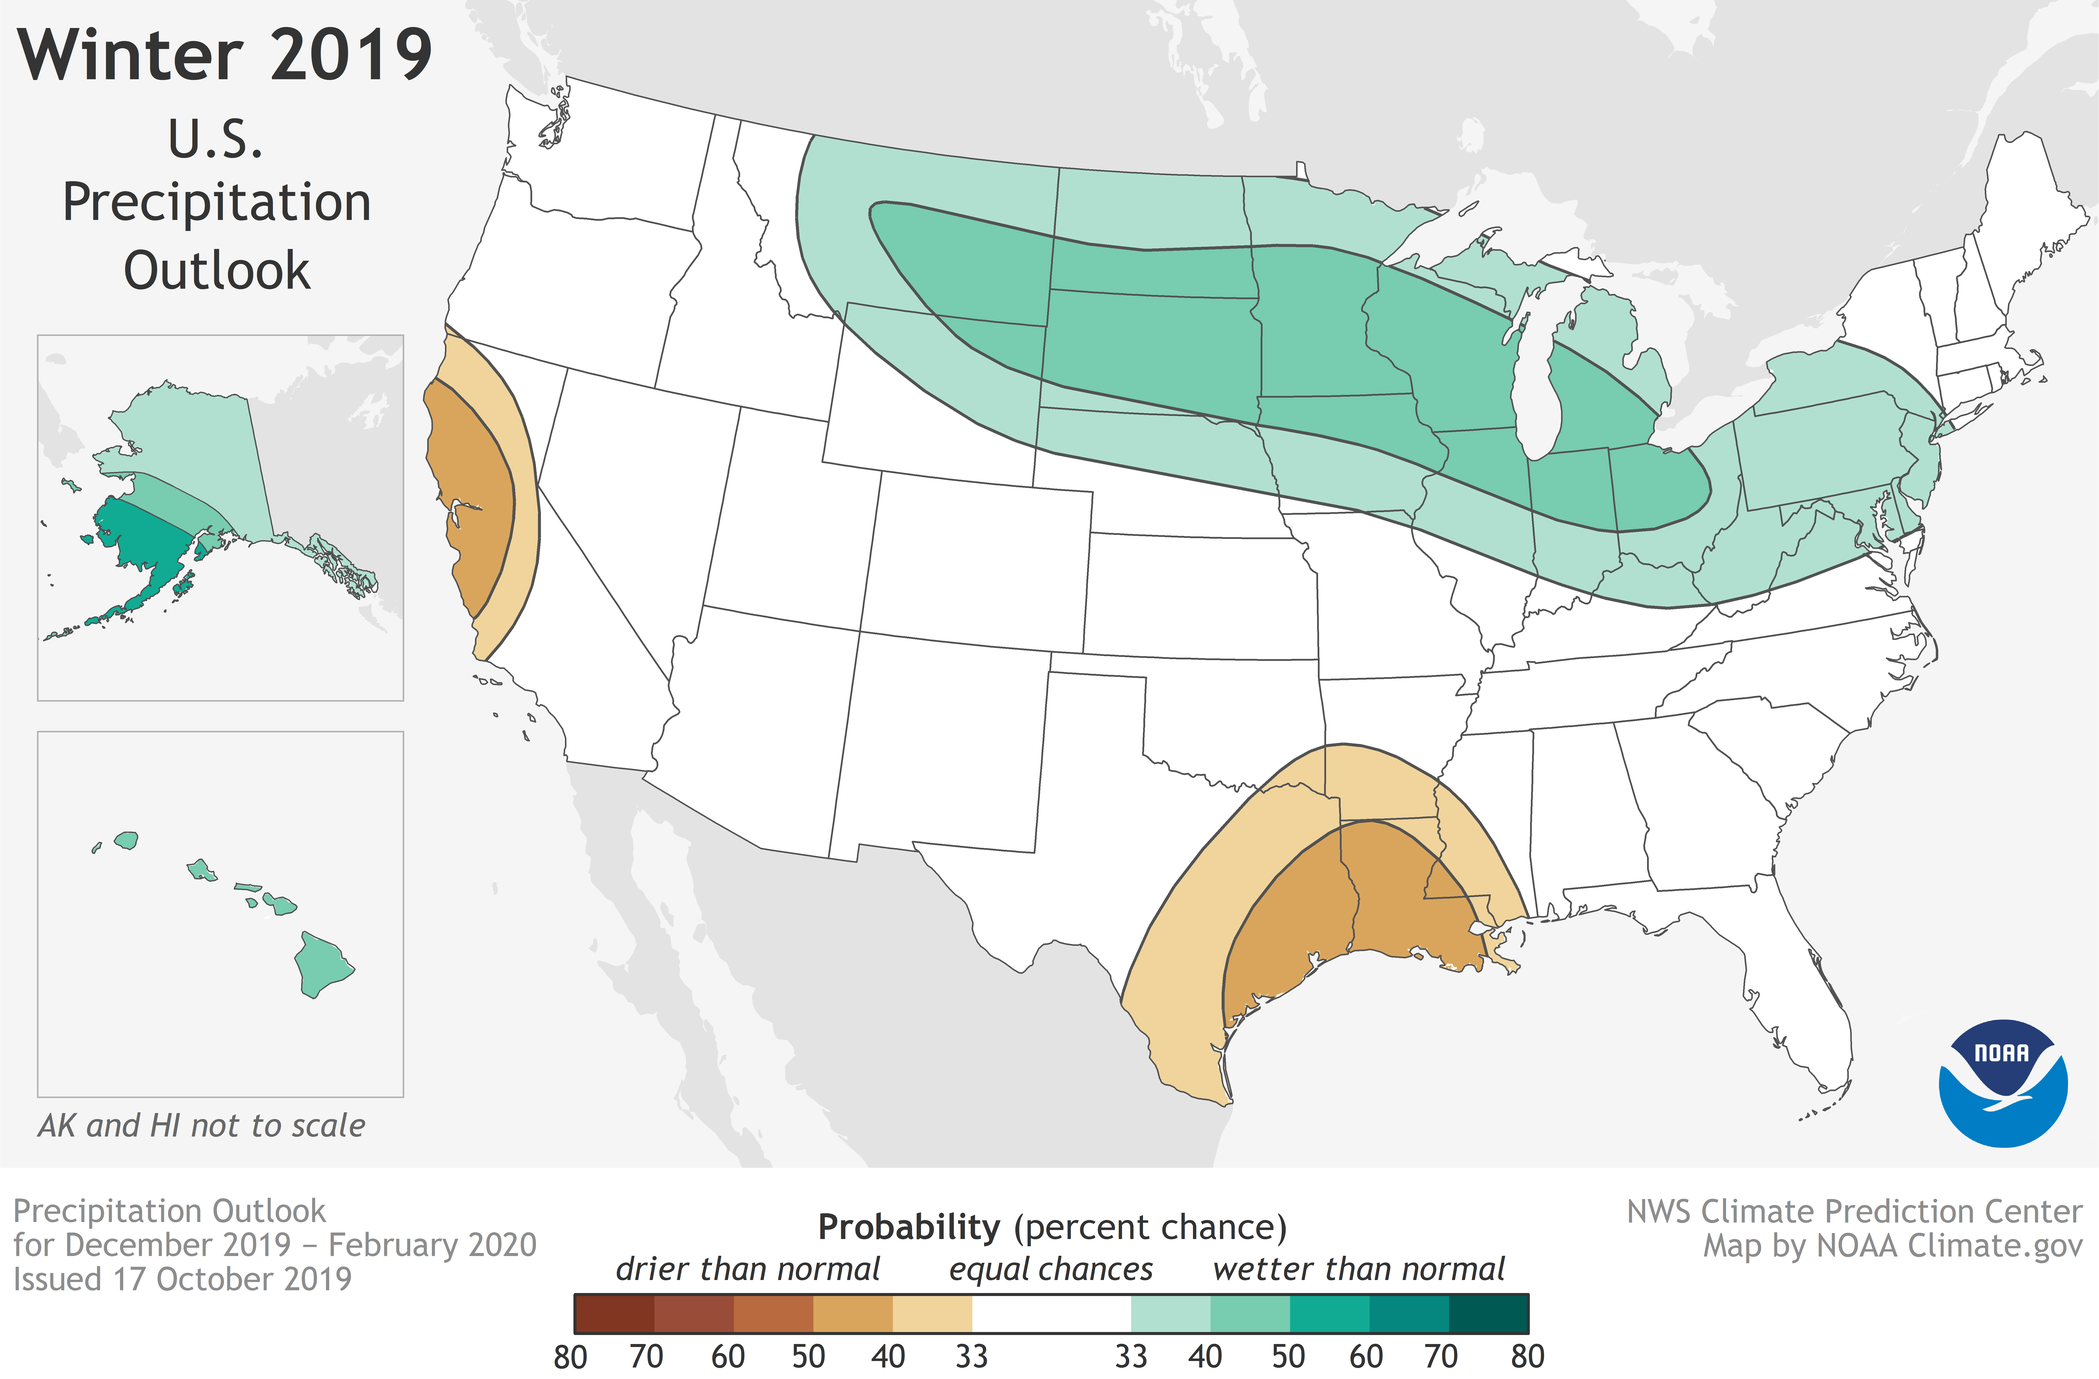 Winter 2019/2020 NOAA precipitation MAP